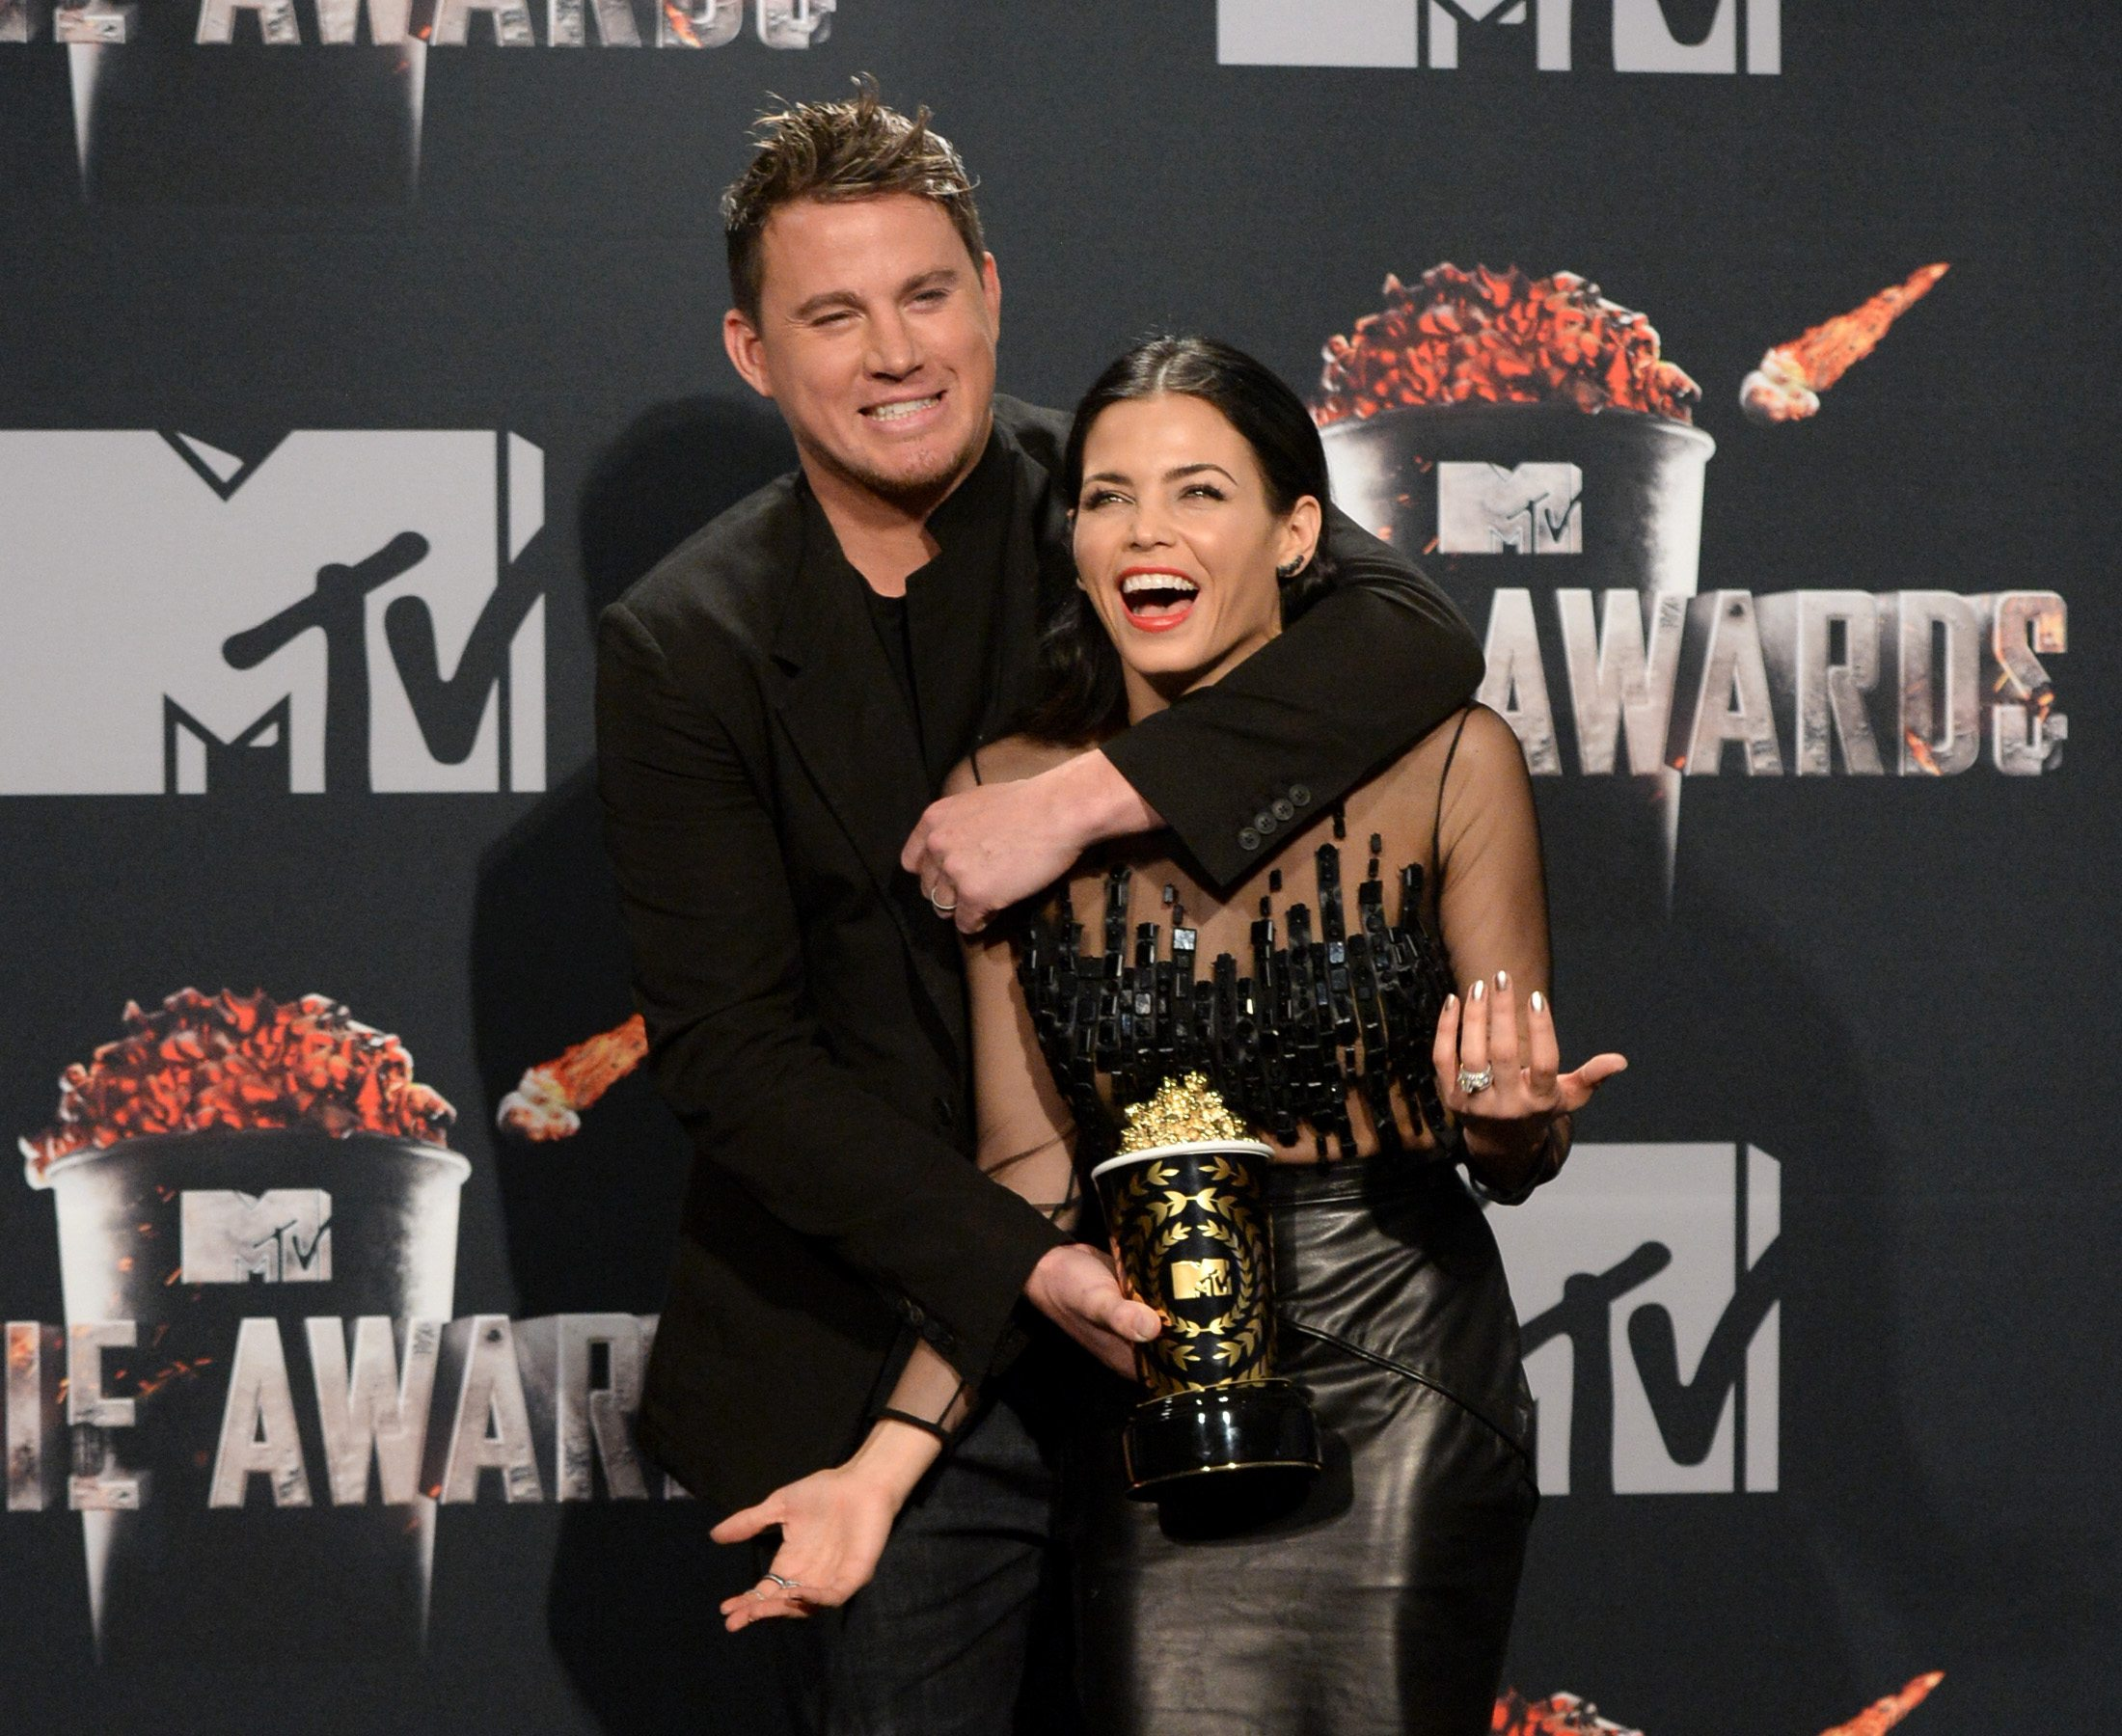 Honoree Channing Tatum (L, holding Trailblazer Award) and actress Jenna Dewan Tatum pose in the press room during the 2014 MTV Movie Awards at Nokia Theatre L.A. Live on April 13, 2014 in Los Angeles, California.